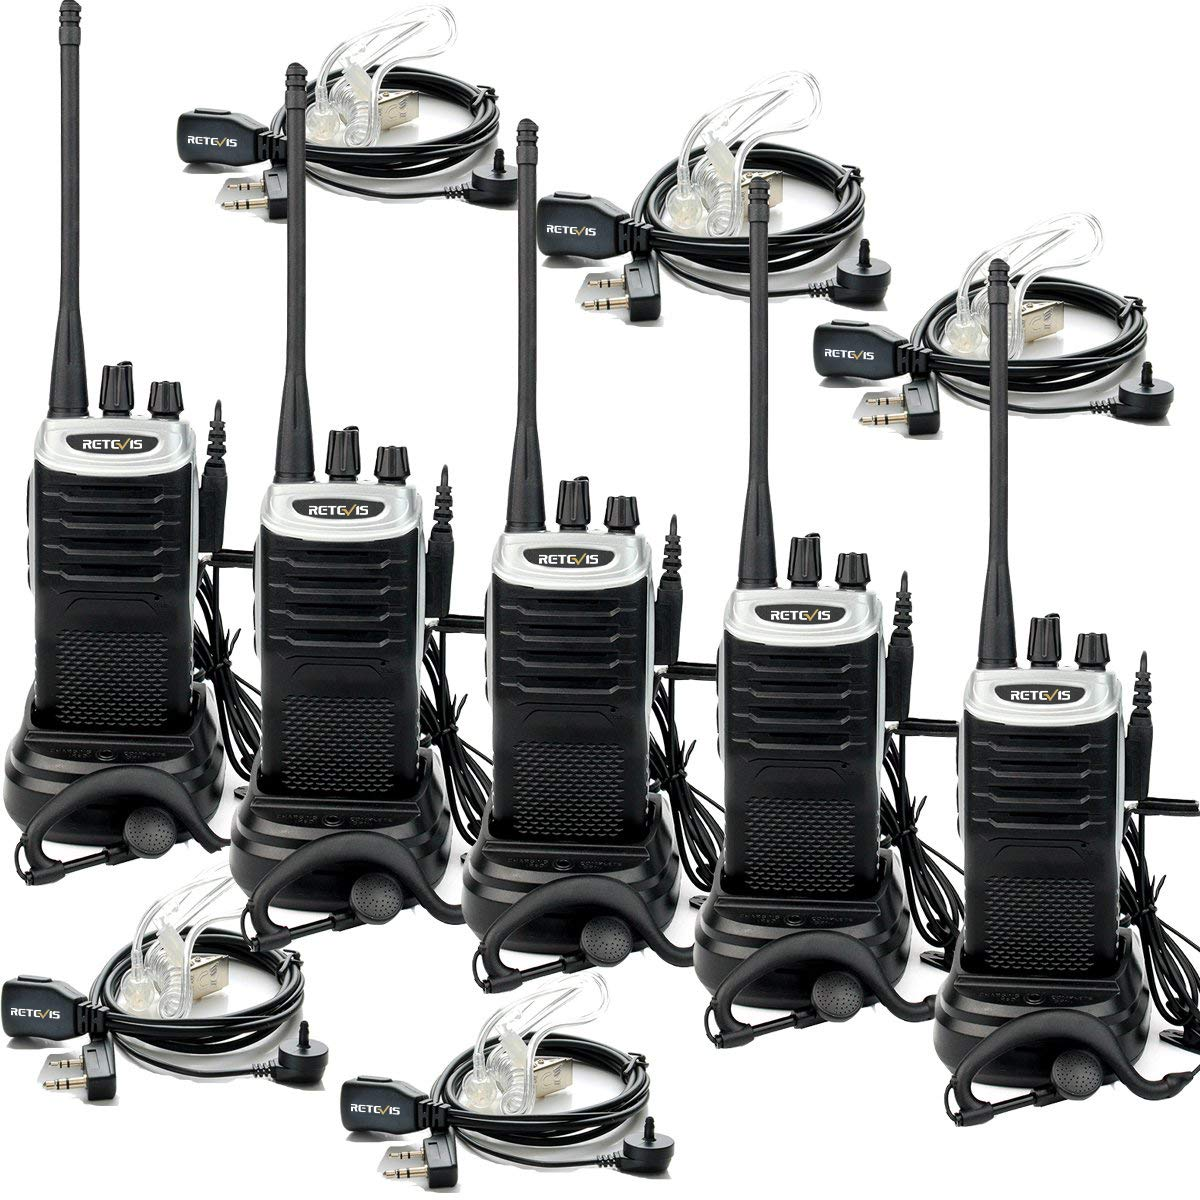 5 Pack Retevis RT7 Two Way Radios USB Rechargeable Hand Free 2 Way Radios UHF Light and Handy Walkie Talkies with Earpiece USA1080A@5-C9001A@5